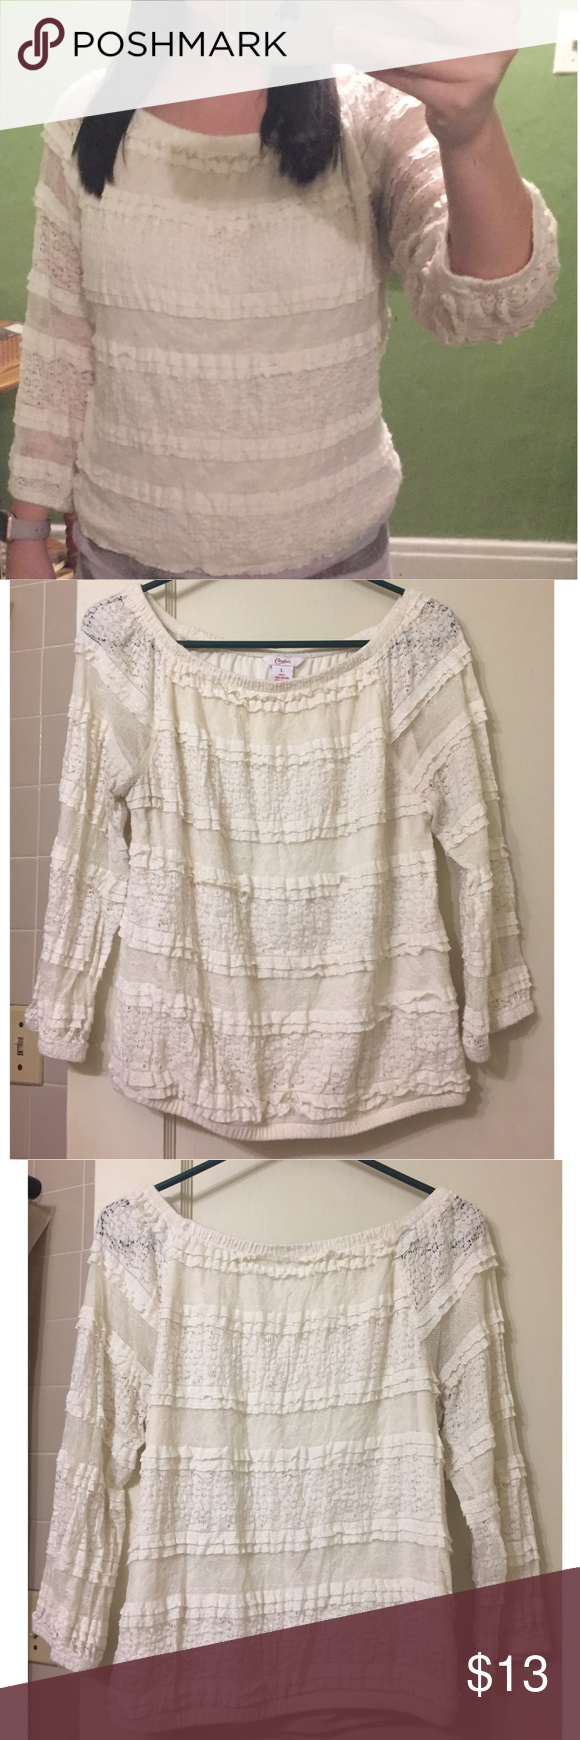 Ruffled Lace Top Juniors large ruffled with lace shirt. Arms also have ruffles and some see through fabric. Cream color/off white/beige colored. Candies brand. Shirt is a little too big for me. Interior lining under shirt. Candie's Tops Blouses